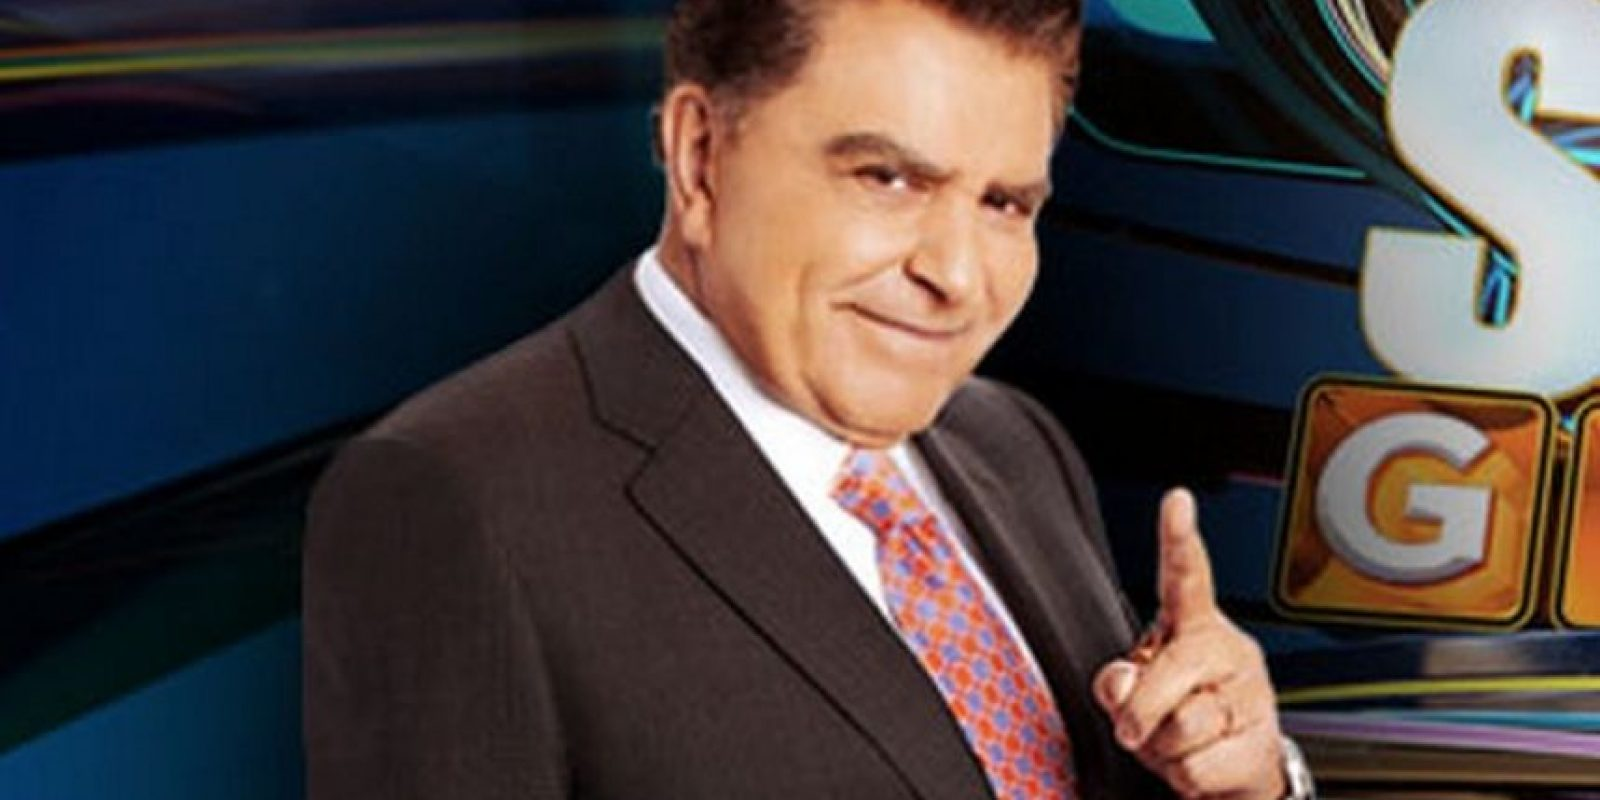 2. Don Francisco Foto: Facebook